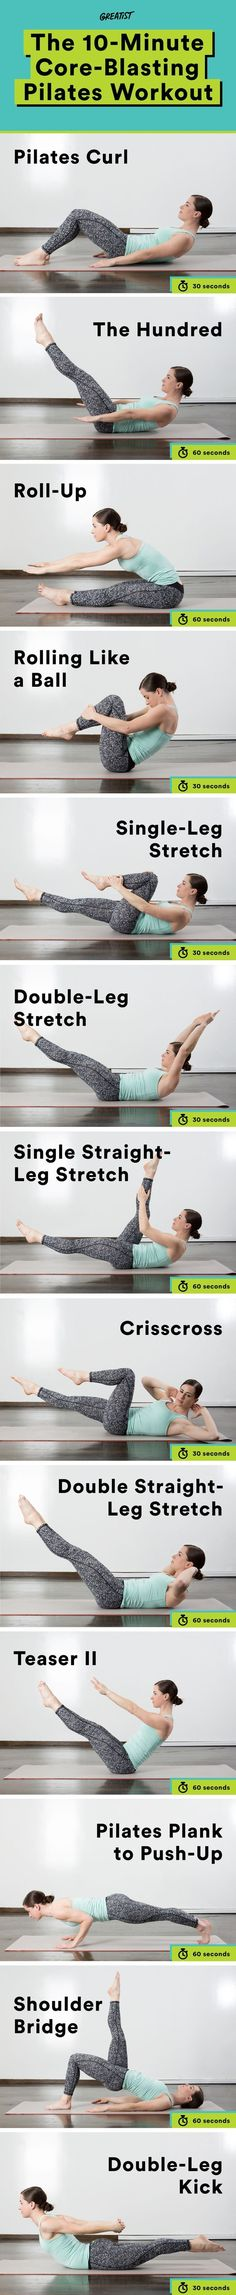 Get a great full-body workout—no fancy equipment or expensive classes required. #pilates #workout Find more relevant stuff: http://victoriajohnson.wordpress.com